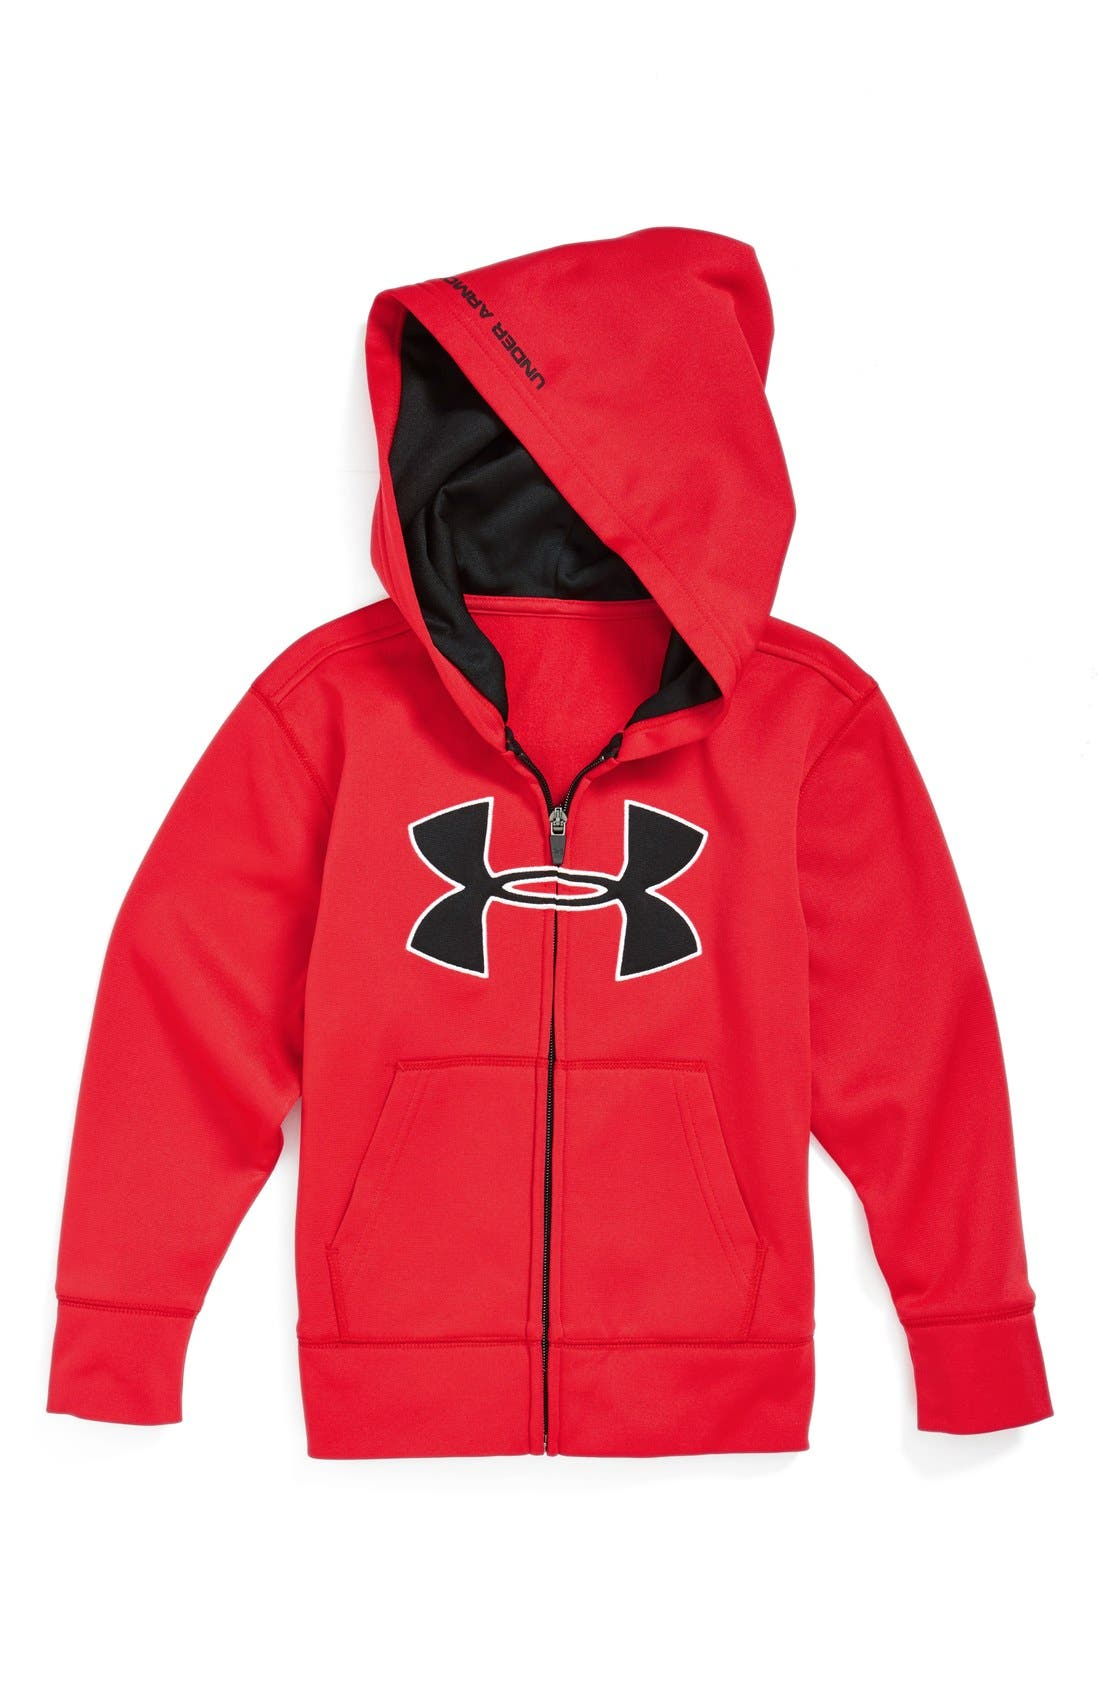 Alternate Image 1 Selected - Under Armour Warm-Up Zip Hoodie (Toddler Boys & Little Boys)